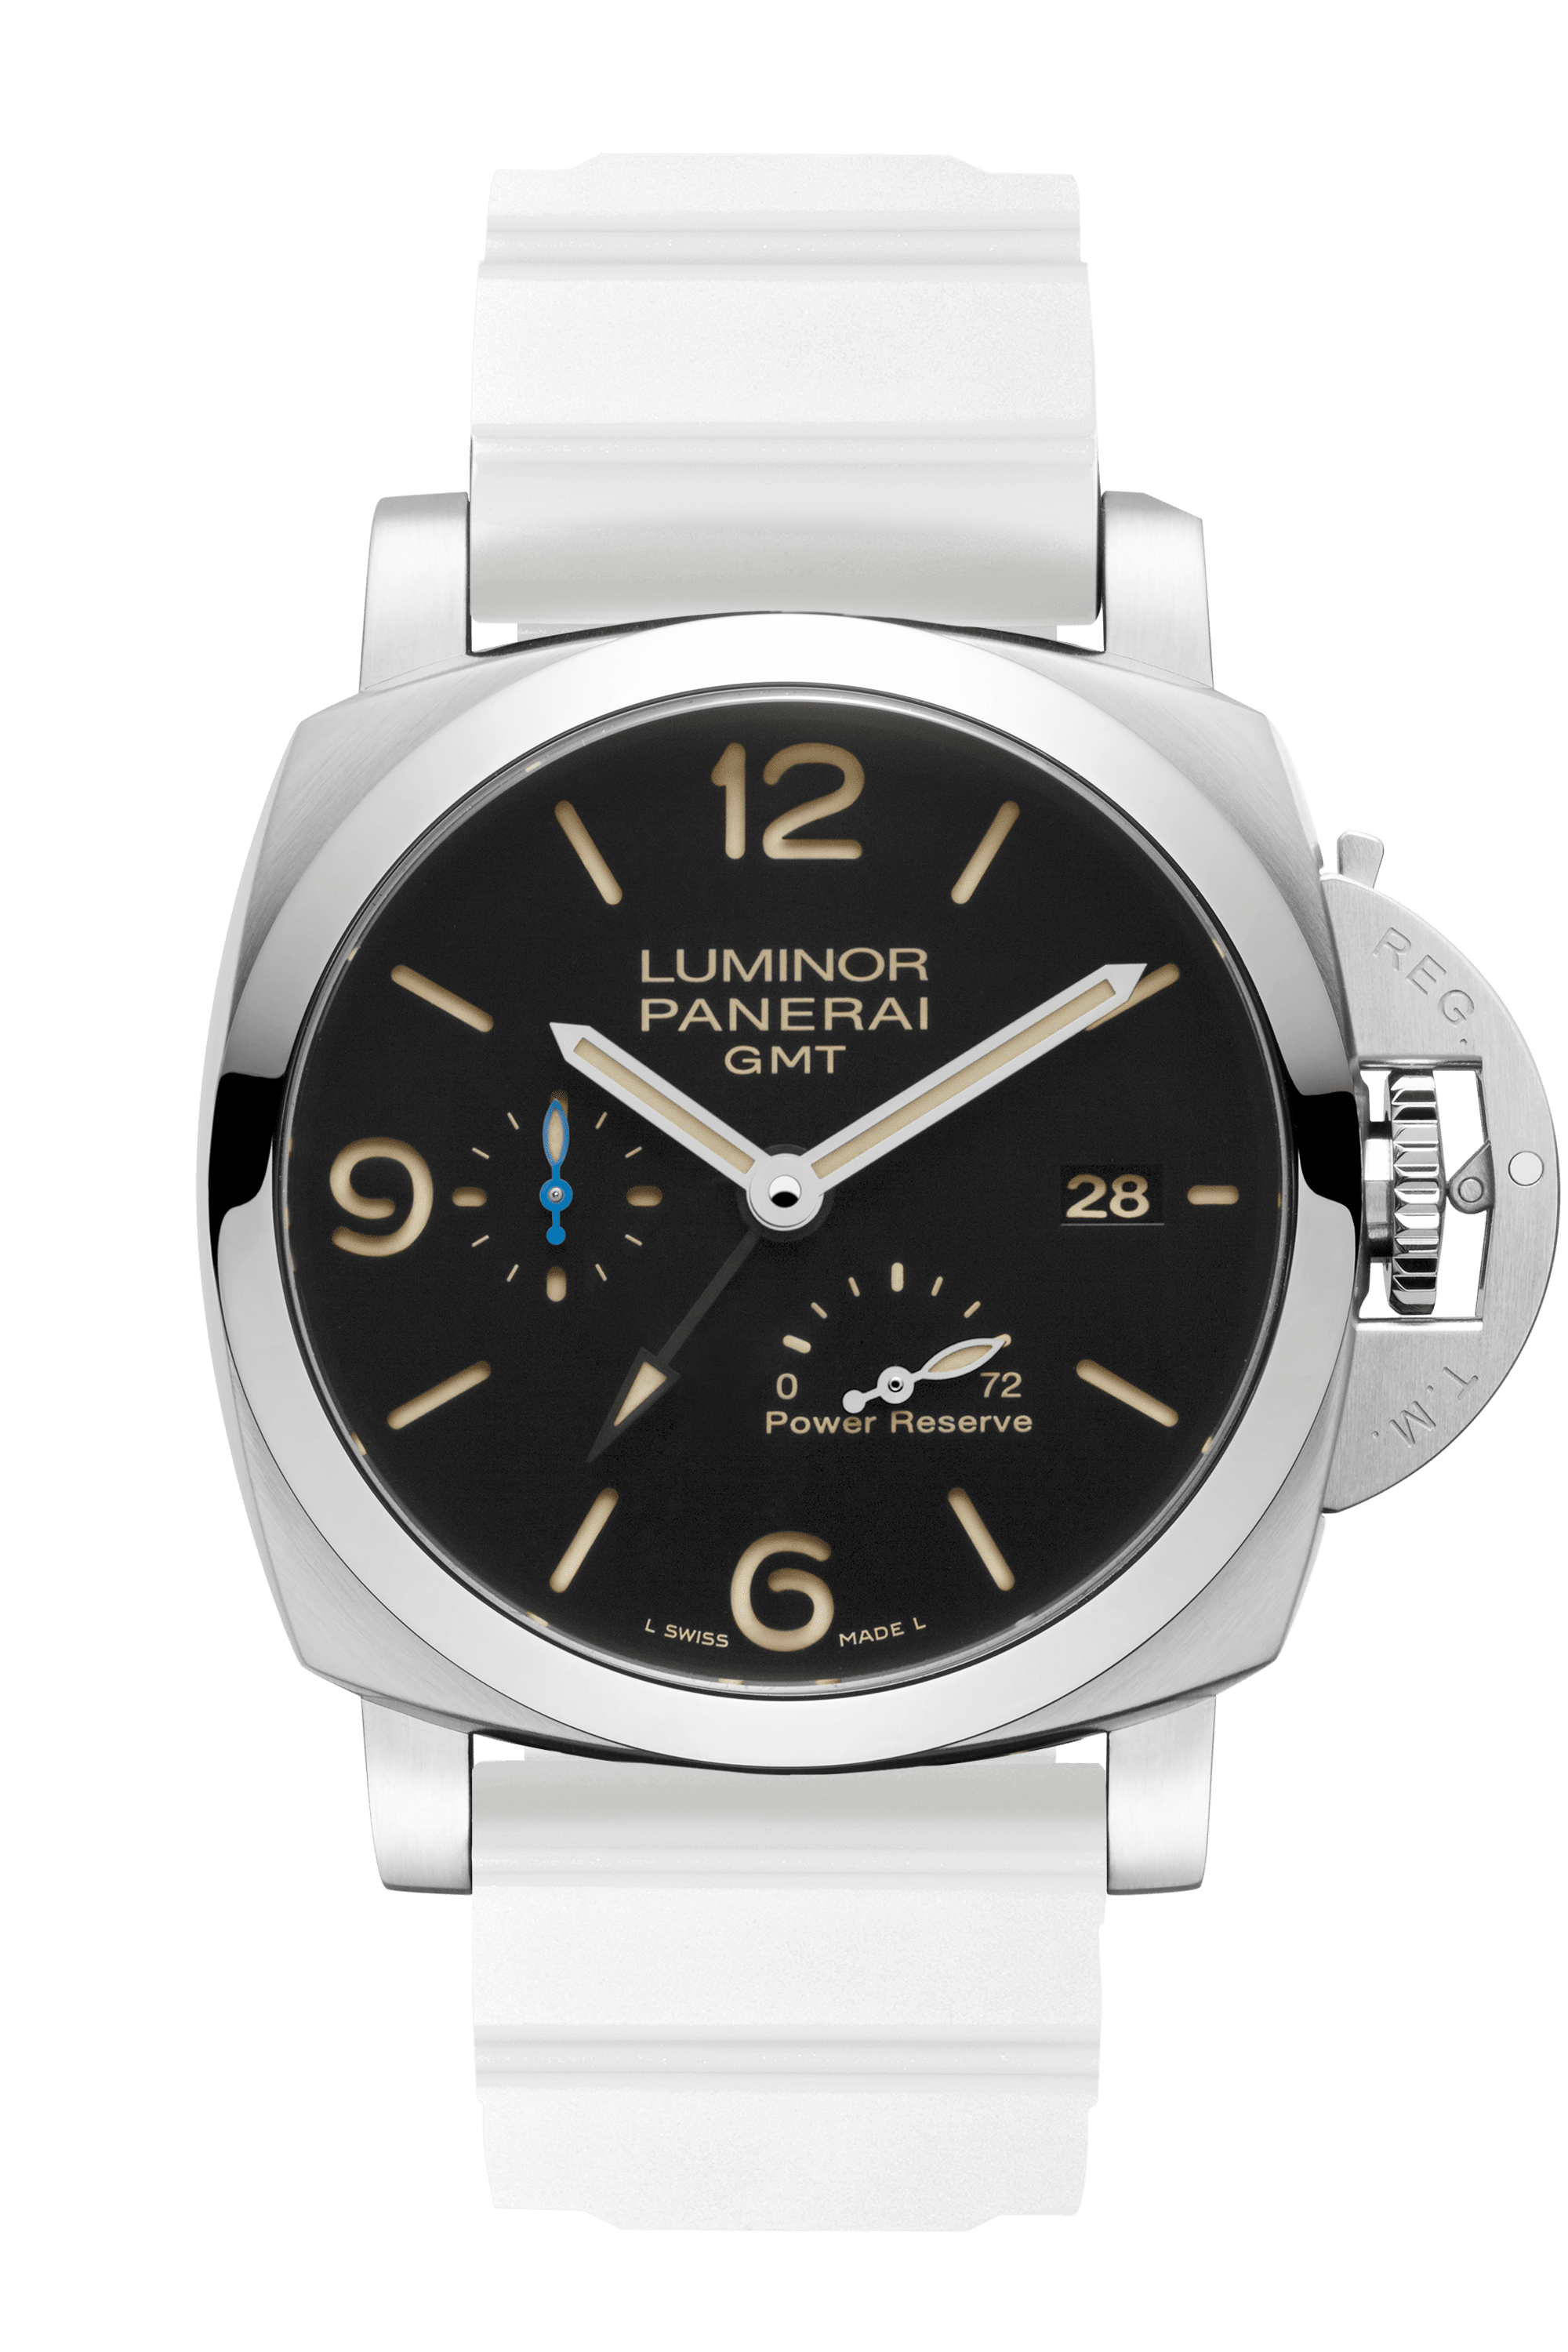 PNPAM01321 - Luminor GMT Power Reserve - 44mm